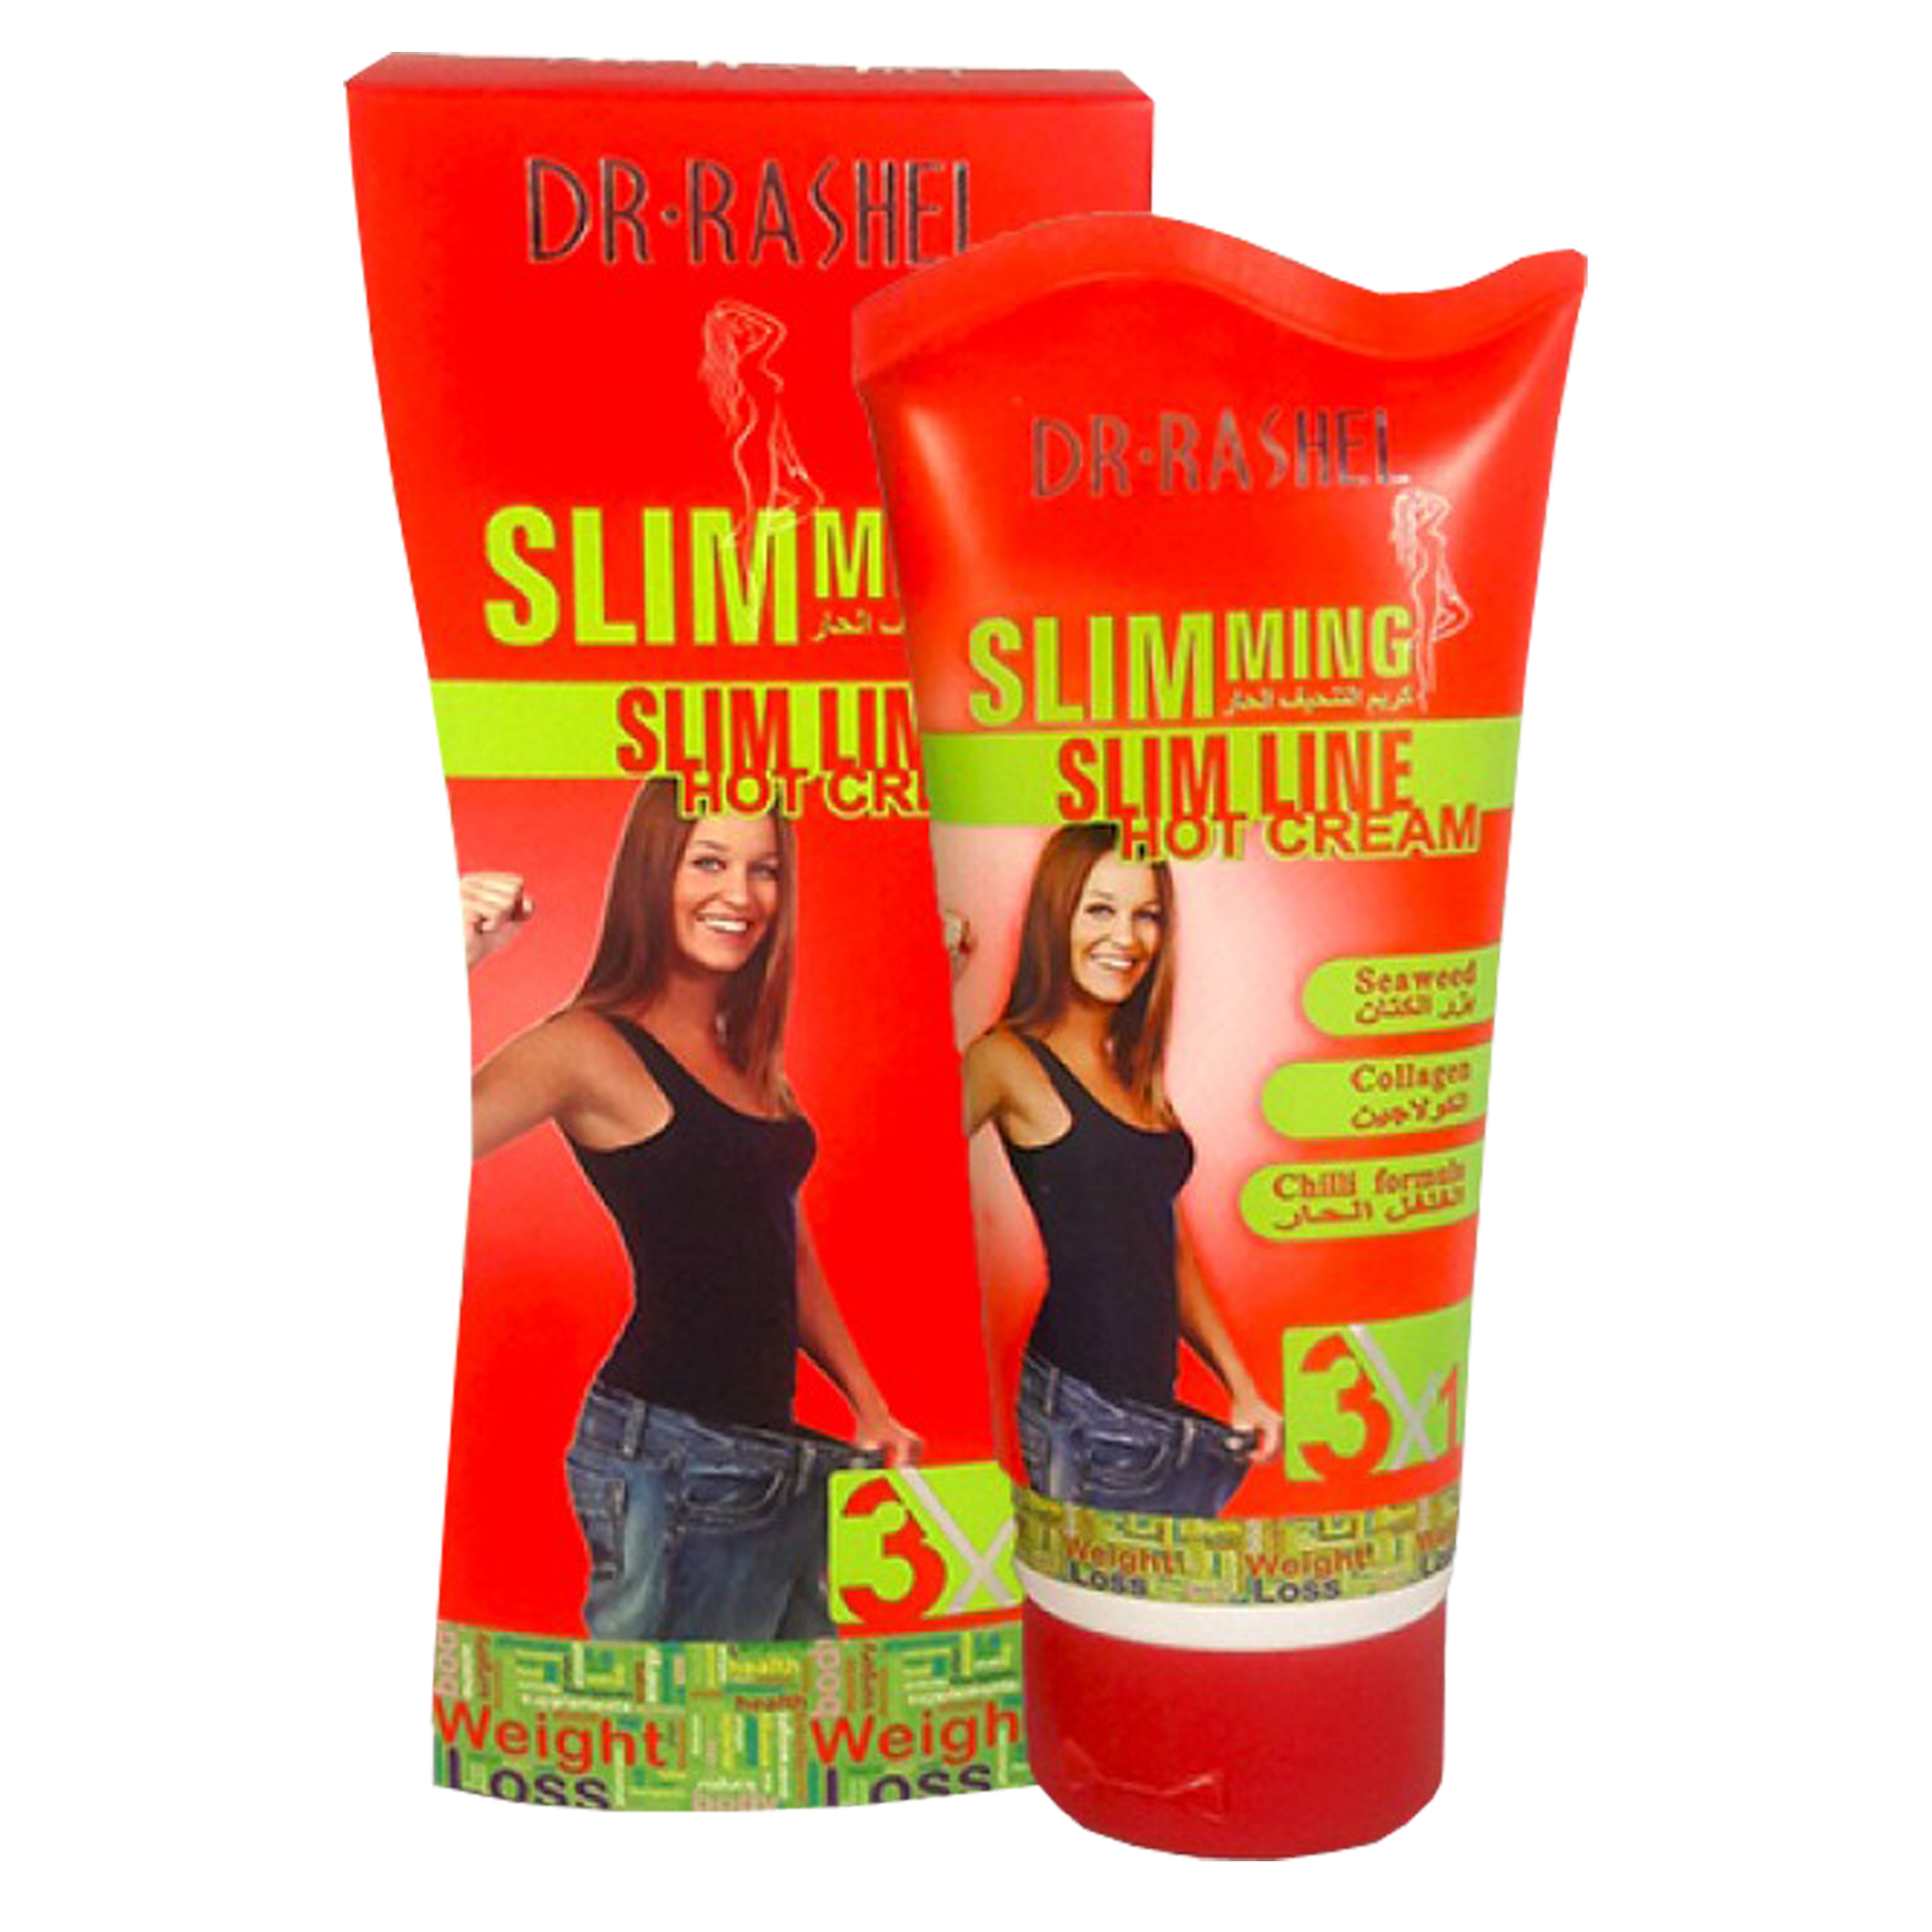 Dr Rashel Slimming Hot Cream 3-1. 150g